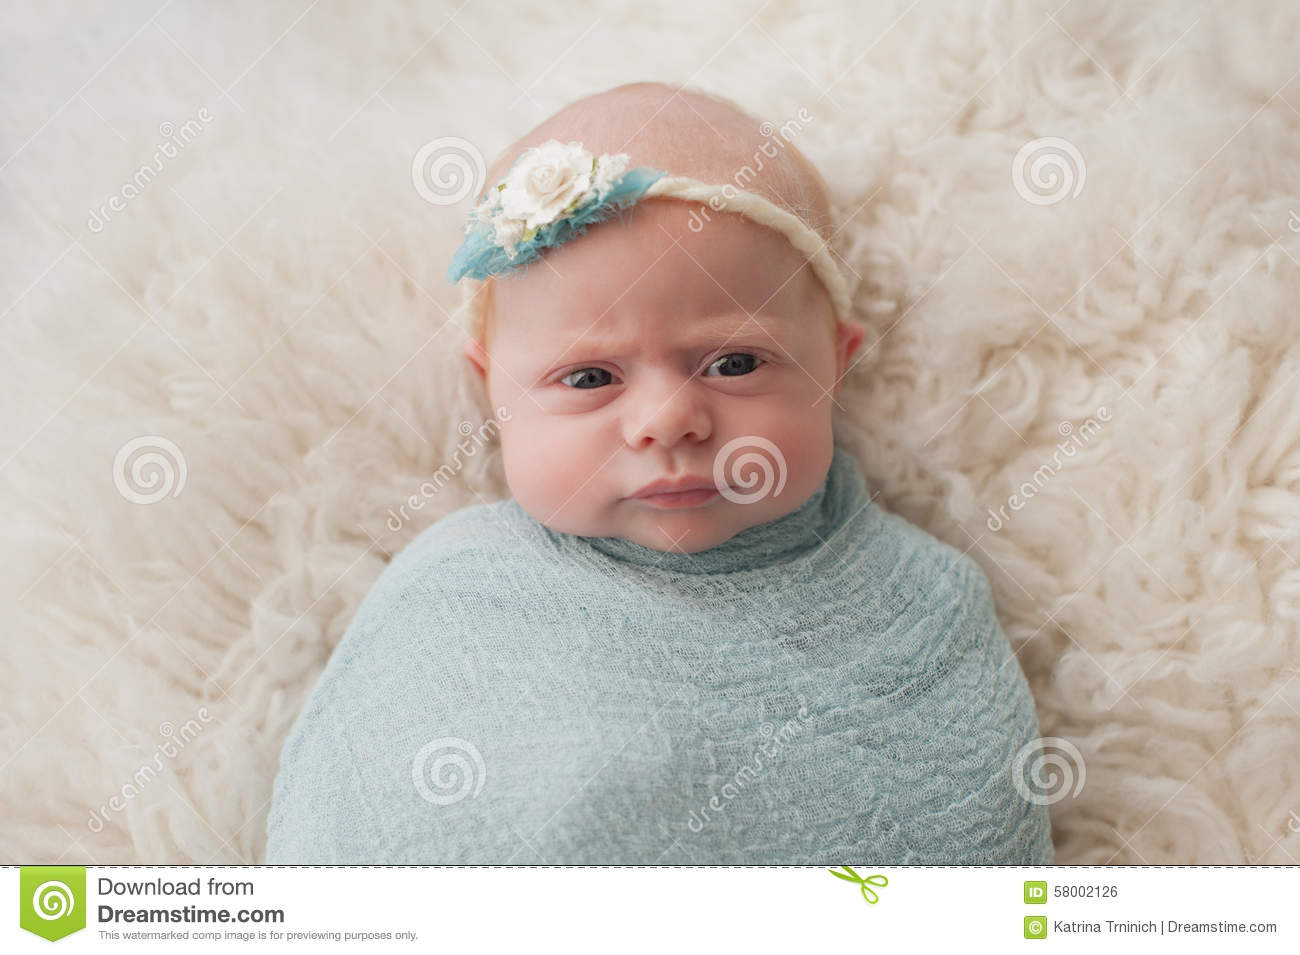 swaddled baby girl with cute expression stock photo - image of cute